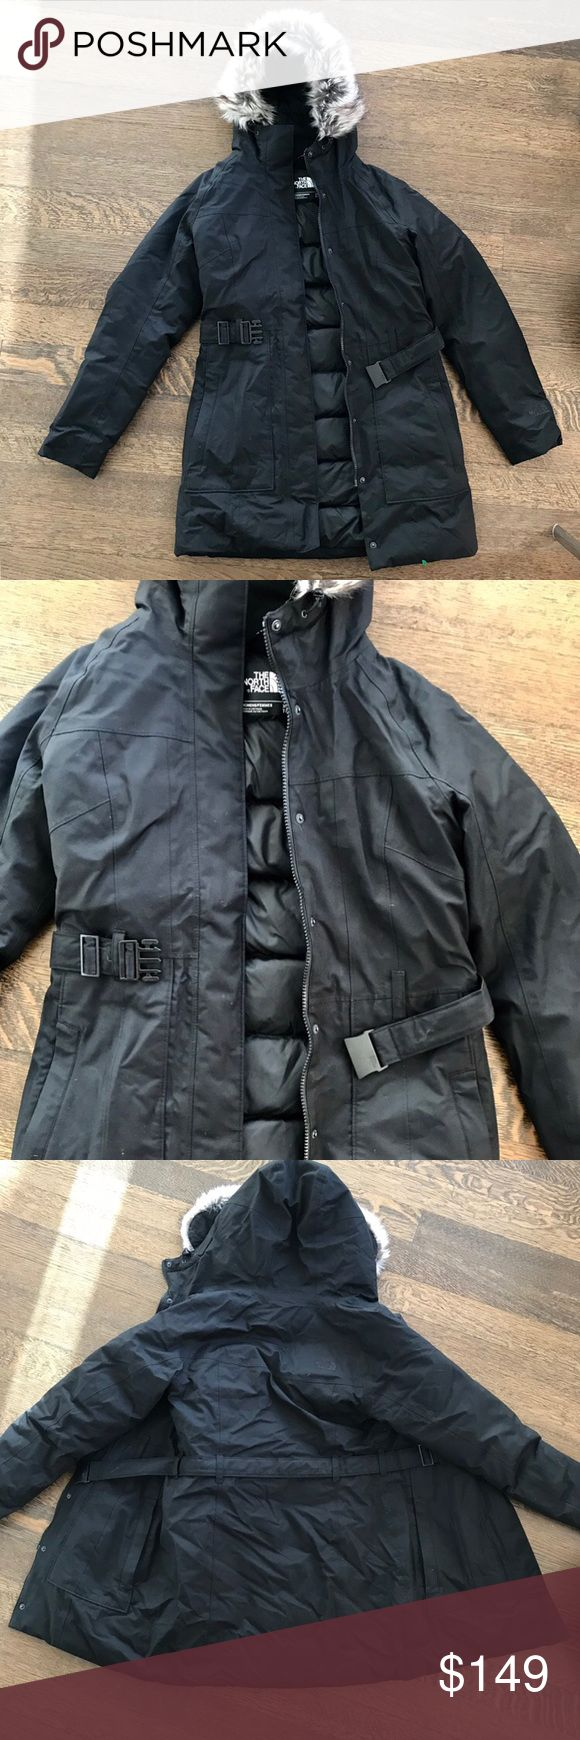 Women's North Face Brooklyn Park down coat Size XS Little used (worm only a few times), in perfect condition showing no sign of wear North Face Brooklyn Parka- women's down coat size xs  Retail price $279 + Tax North Face Jackets & Coats